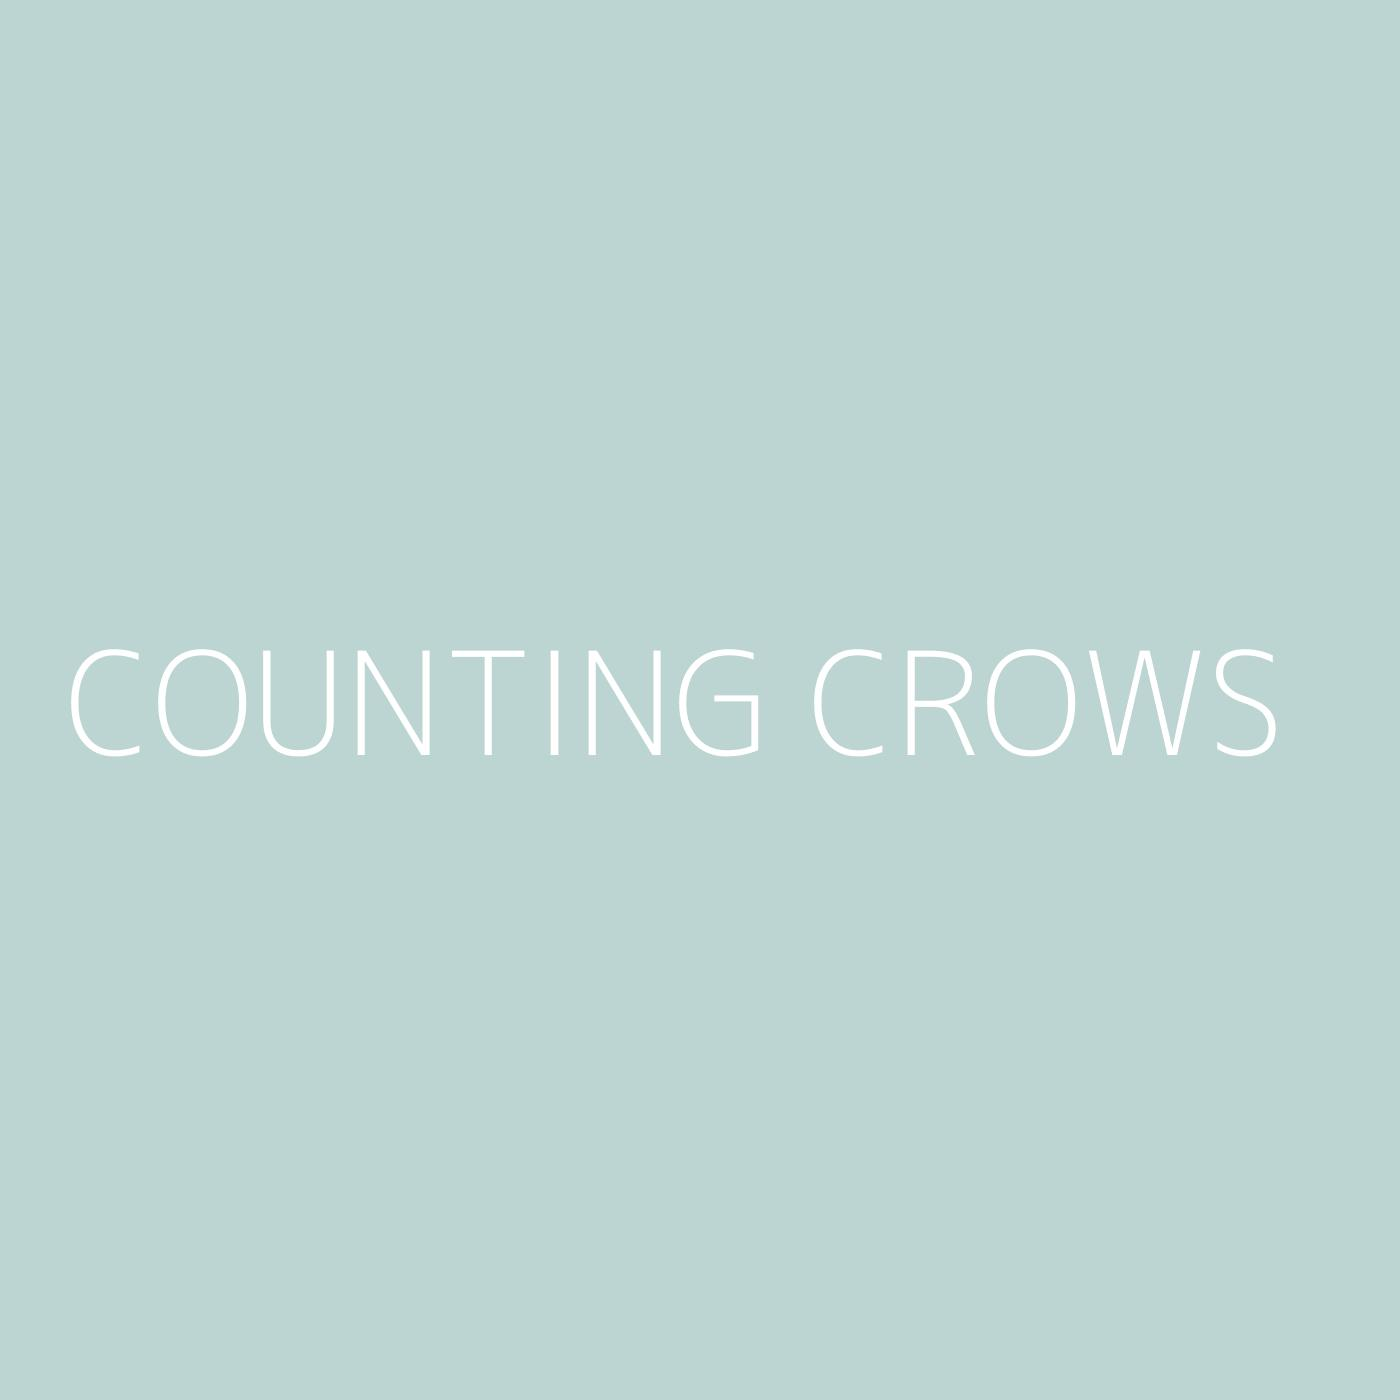 Counting Crows Playlist Artwork